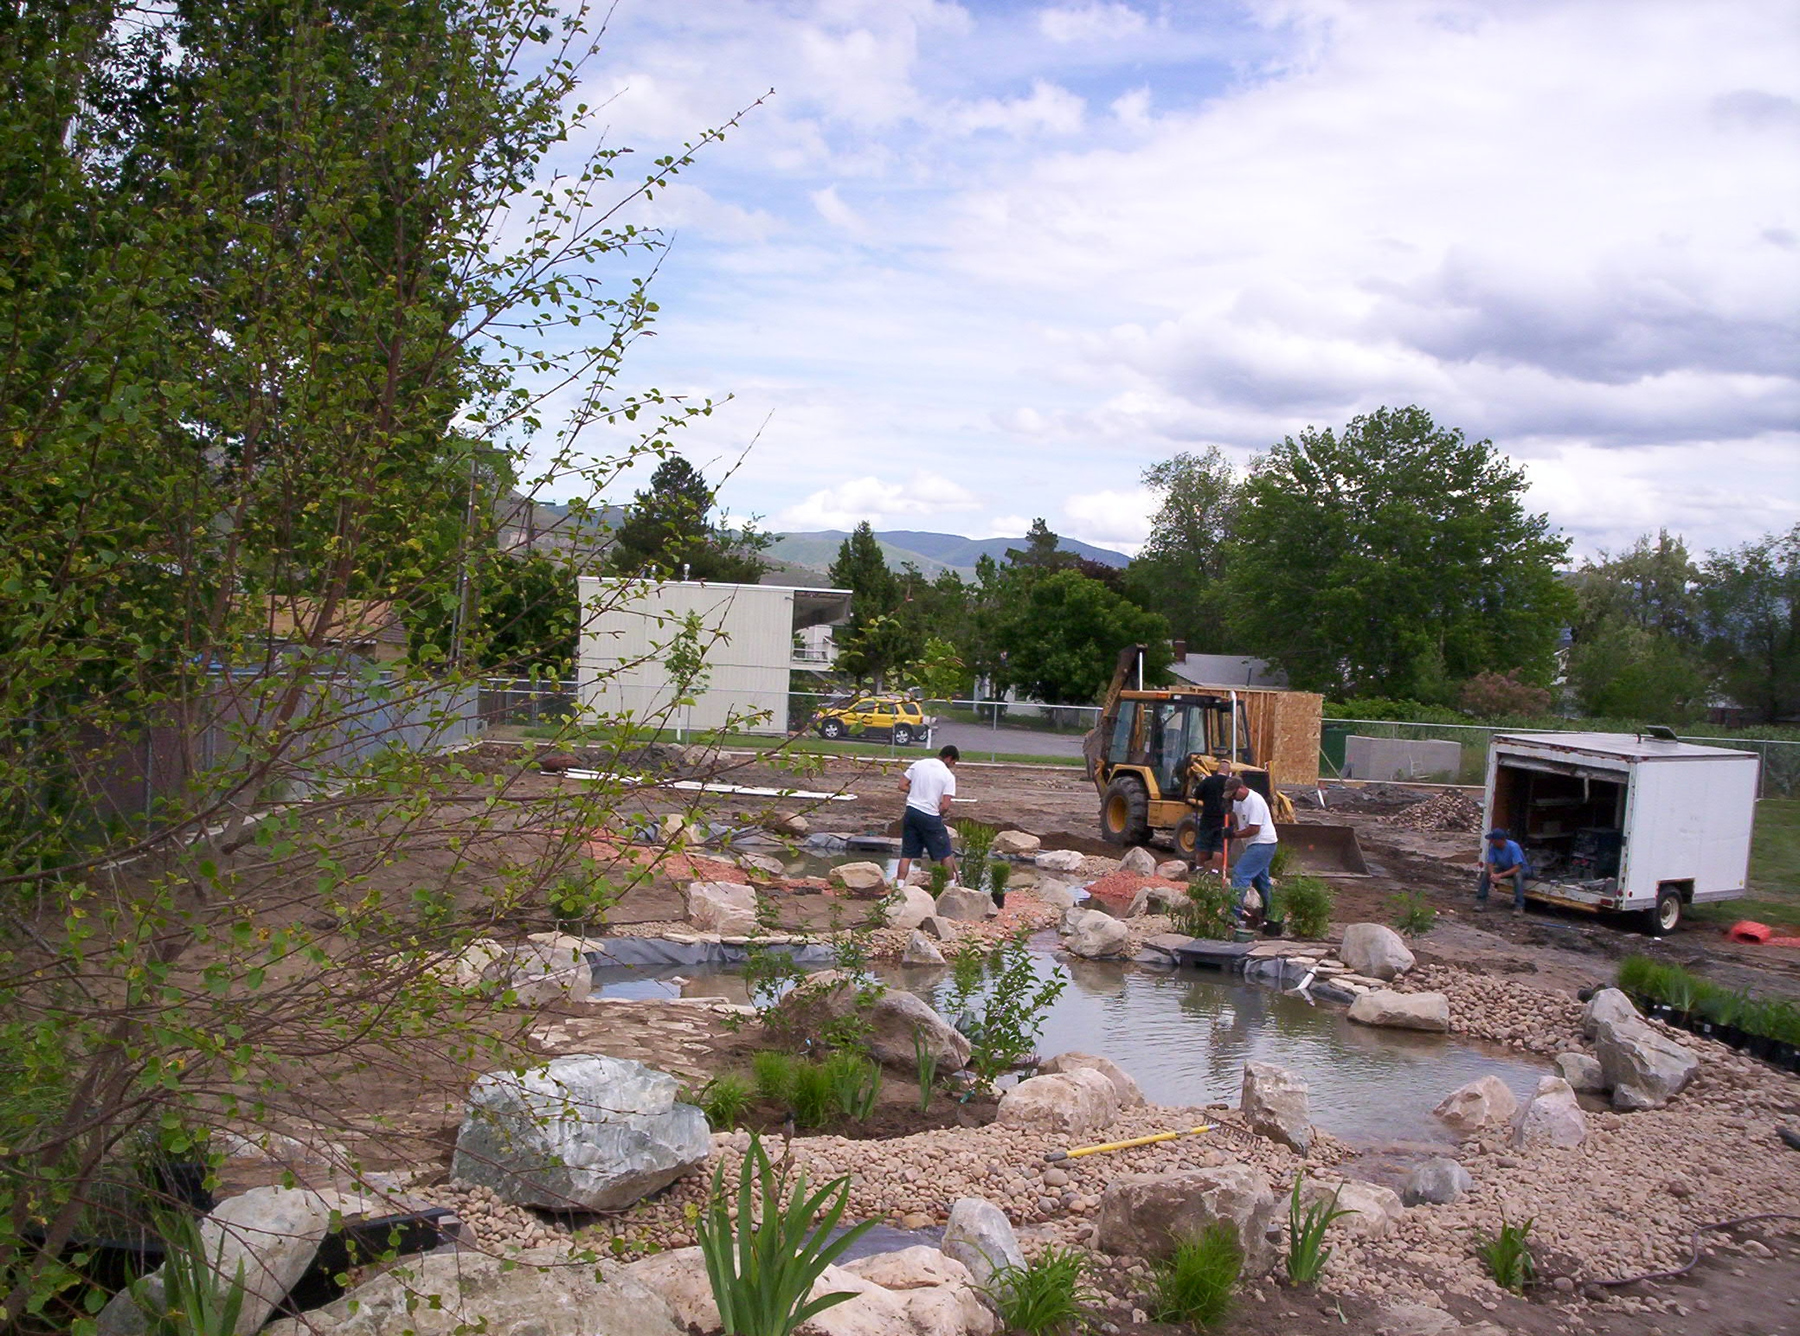 A threatened Utah fish -- the least chub -- will be introduced to these ponds at a recently constructed wetland at Salt Lake City's Escalante Elementary School. It is part of a University of Utah program that puts science graduate students into public schools to work with teachers in inspiring students to feel wonder and passion about nature.